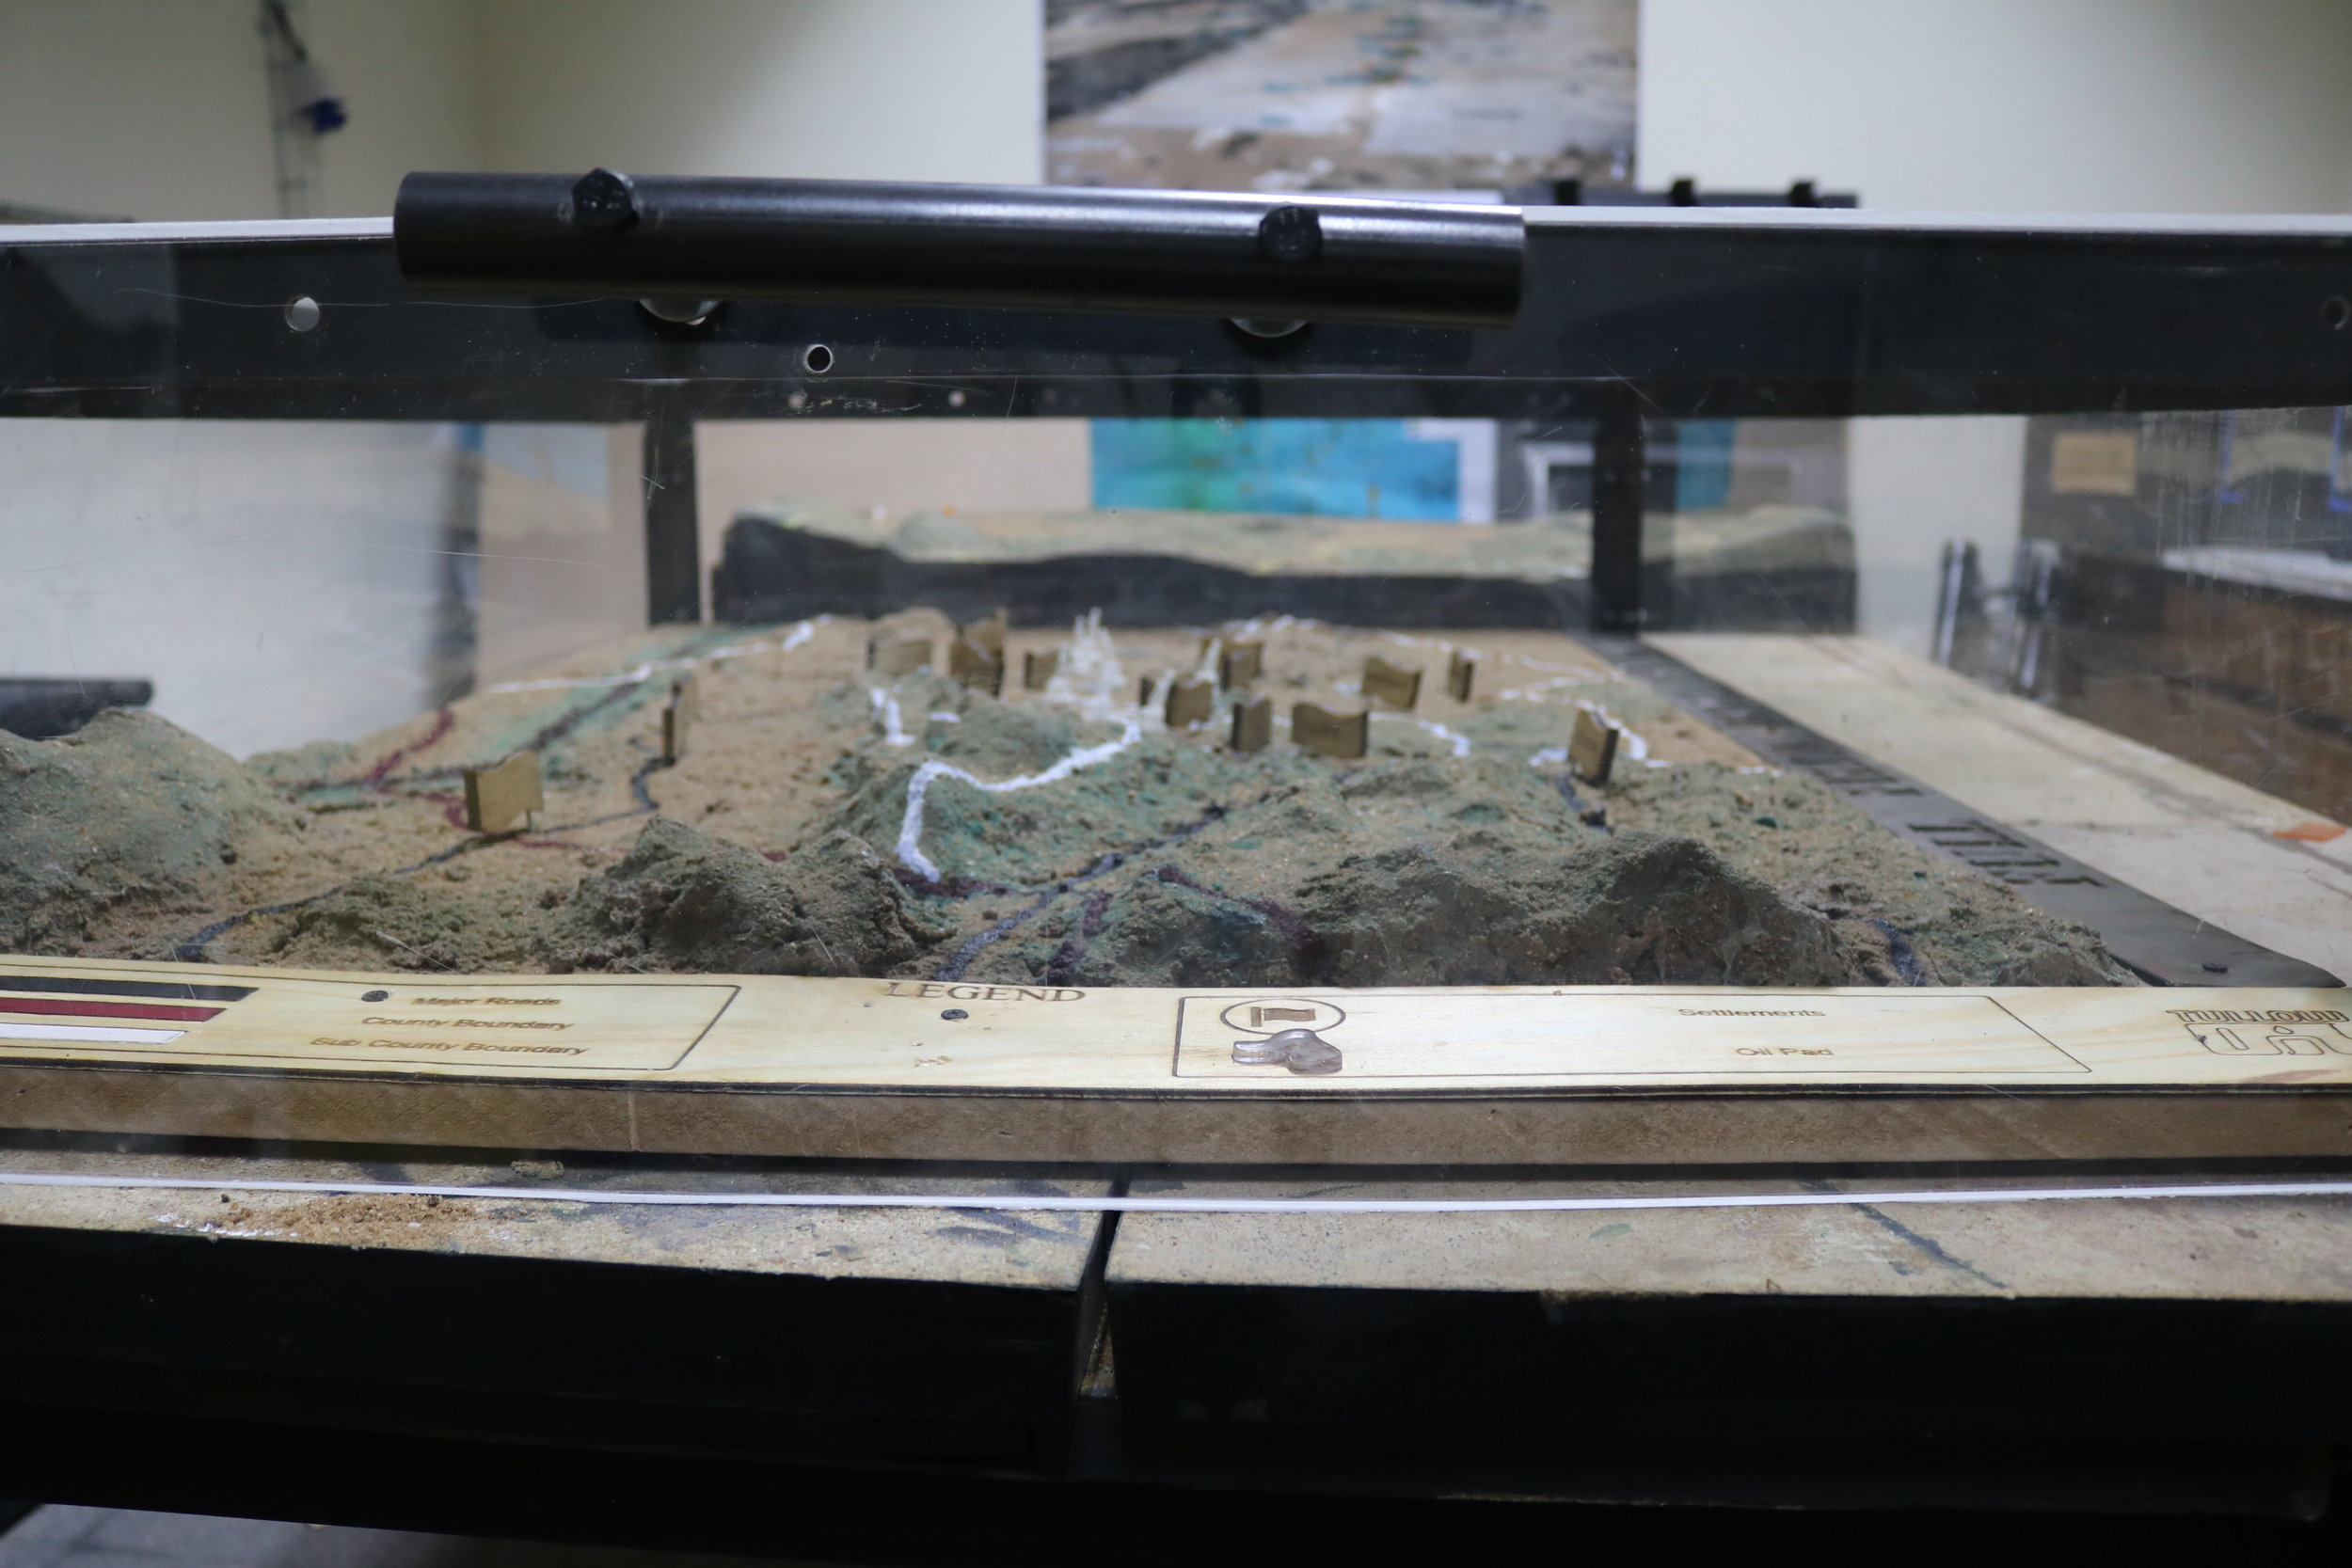 Tullow oil, an independent oil and gas exploration and production company contracted Gearbox make a 3D model of the Turkana landscape with oil reservoirs identifications.